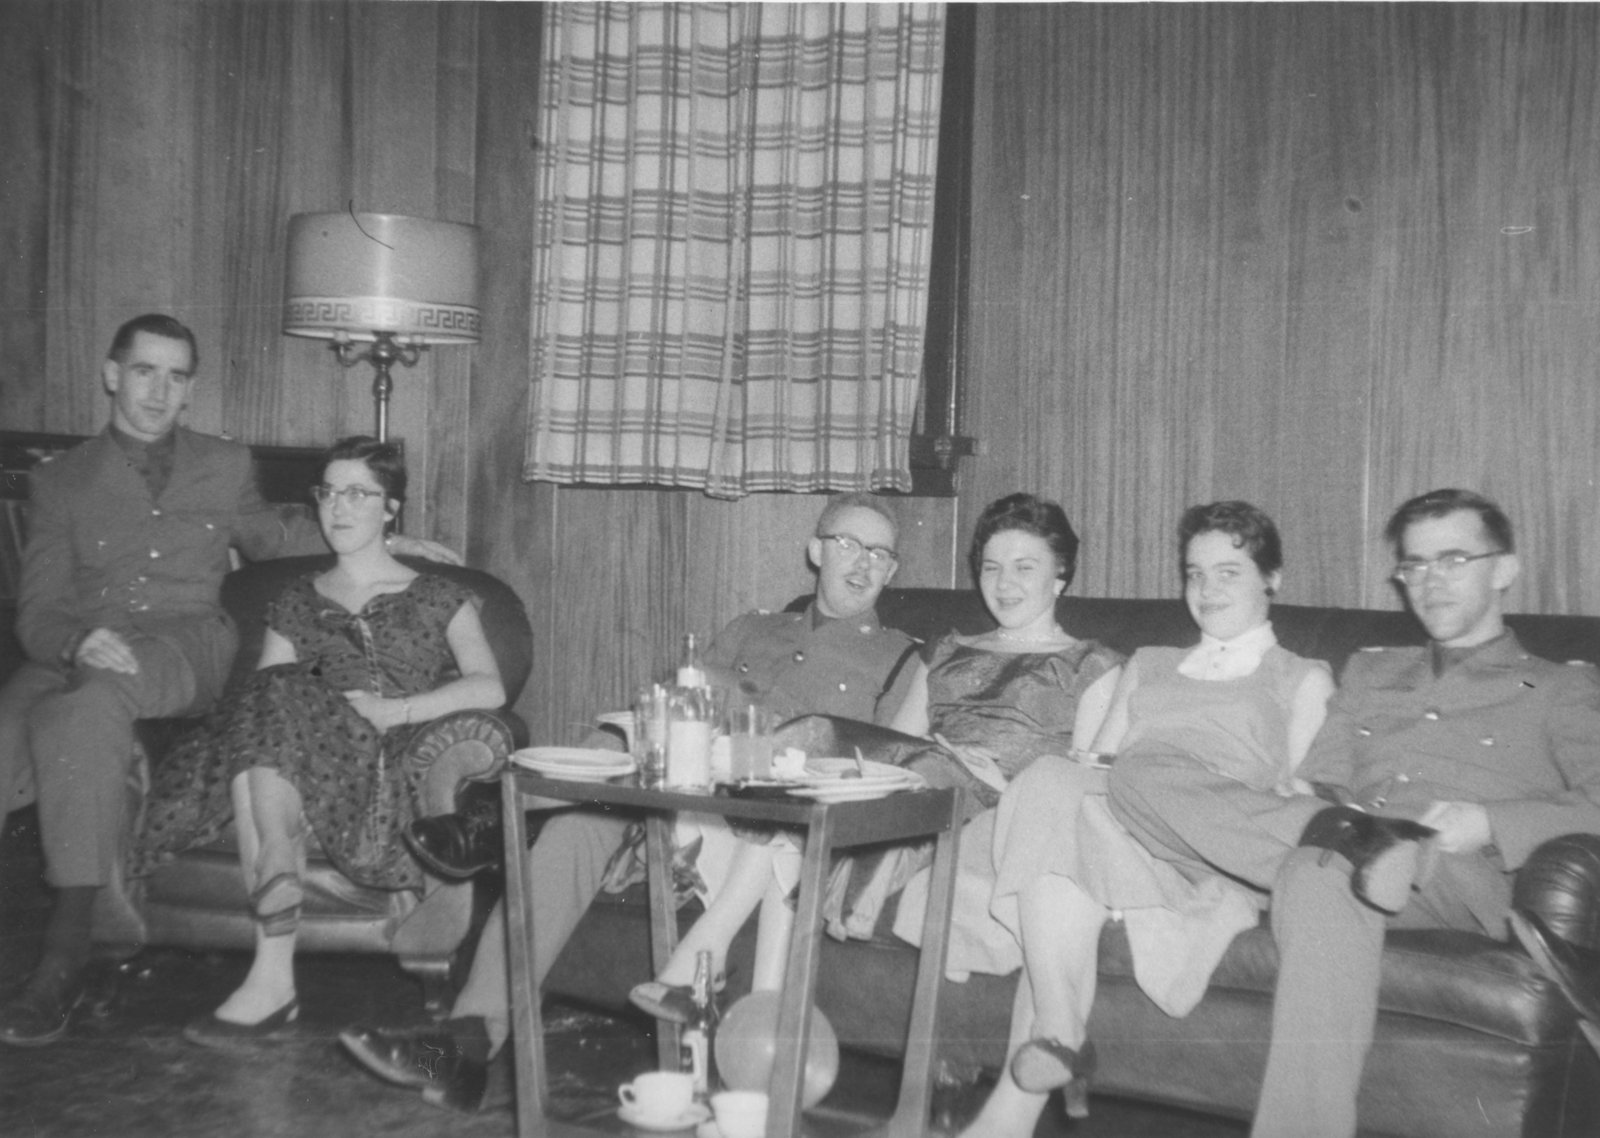 Canadian Officers' Training Corps Ball, 1955-56